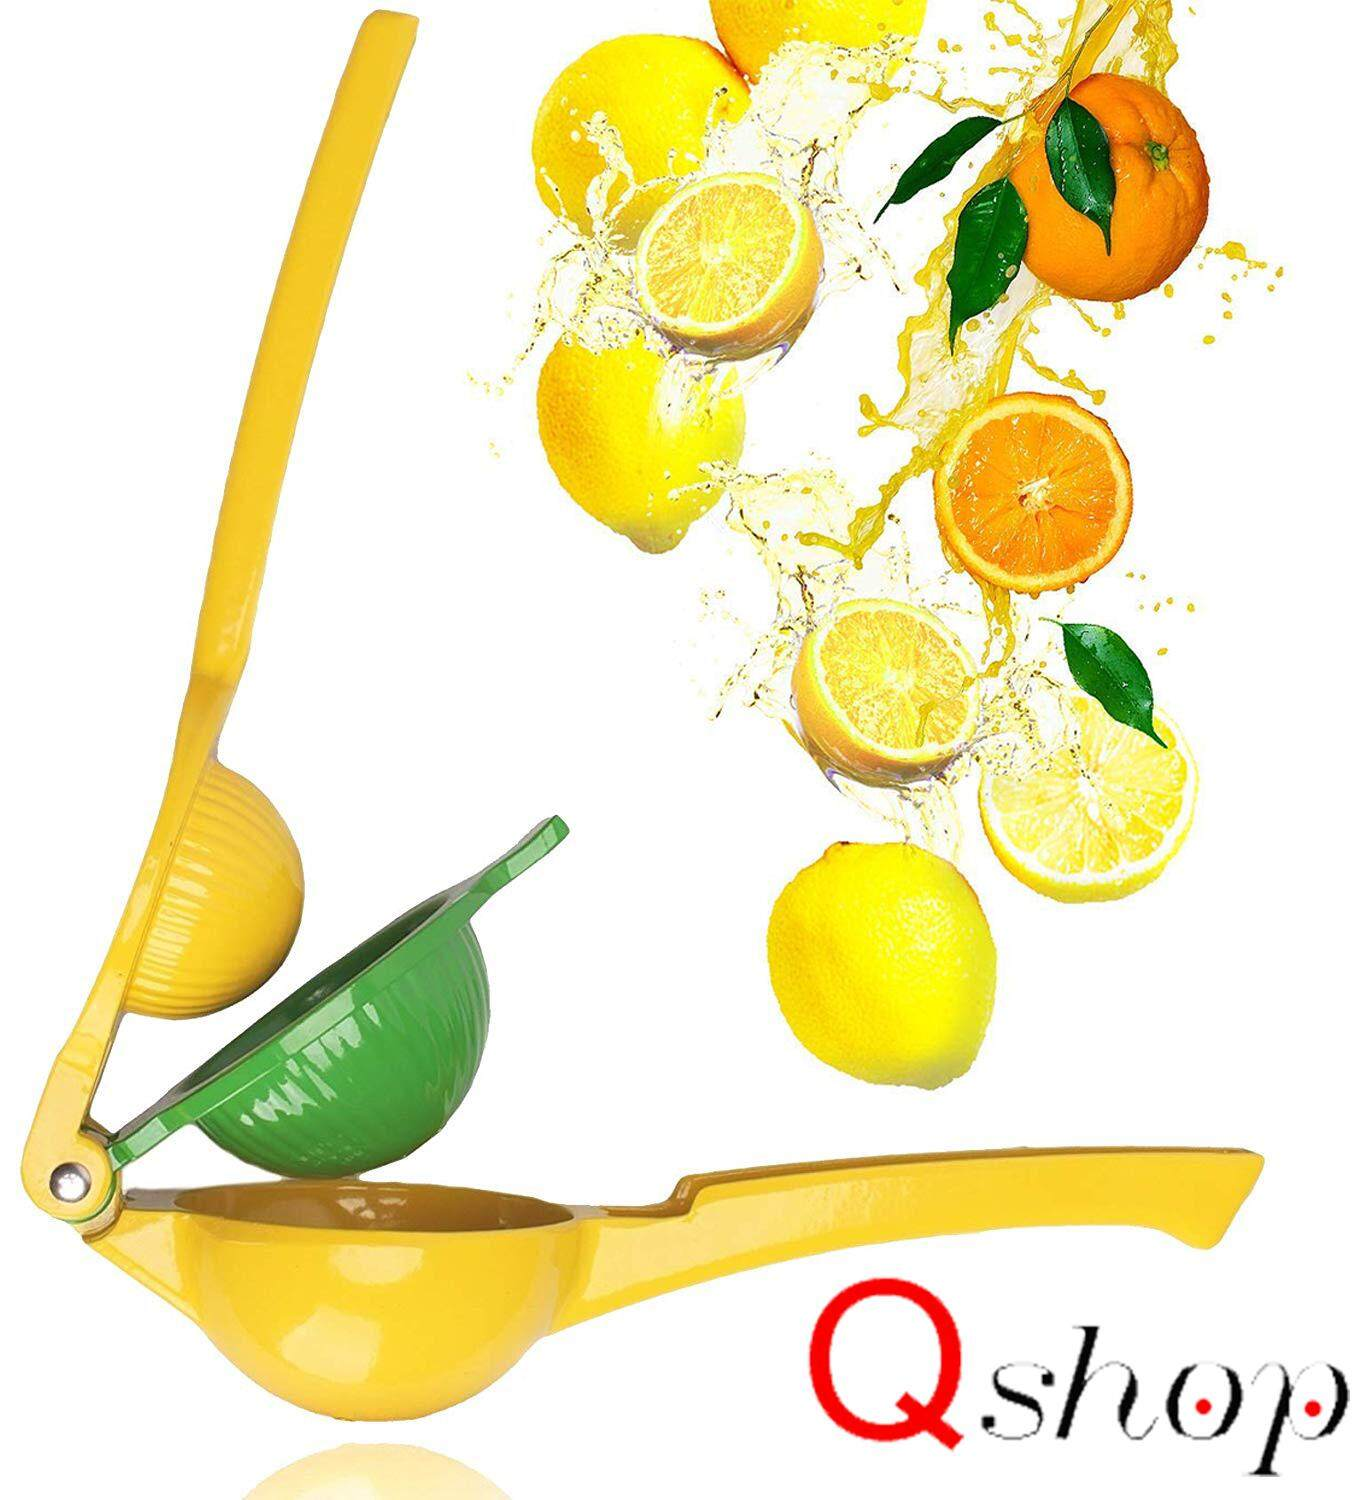 ??2 in 1?Q-shop Juicers Fruit Extractors Hand Made Lemon Squeezer,New Premium Quality Metal Lime Squeezer Manual Citrus Press Juicer with Long Handle Spoon